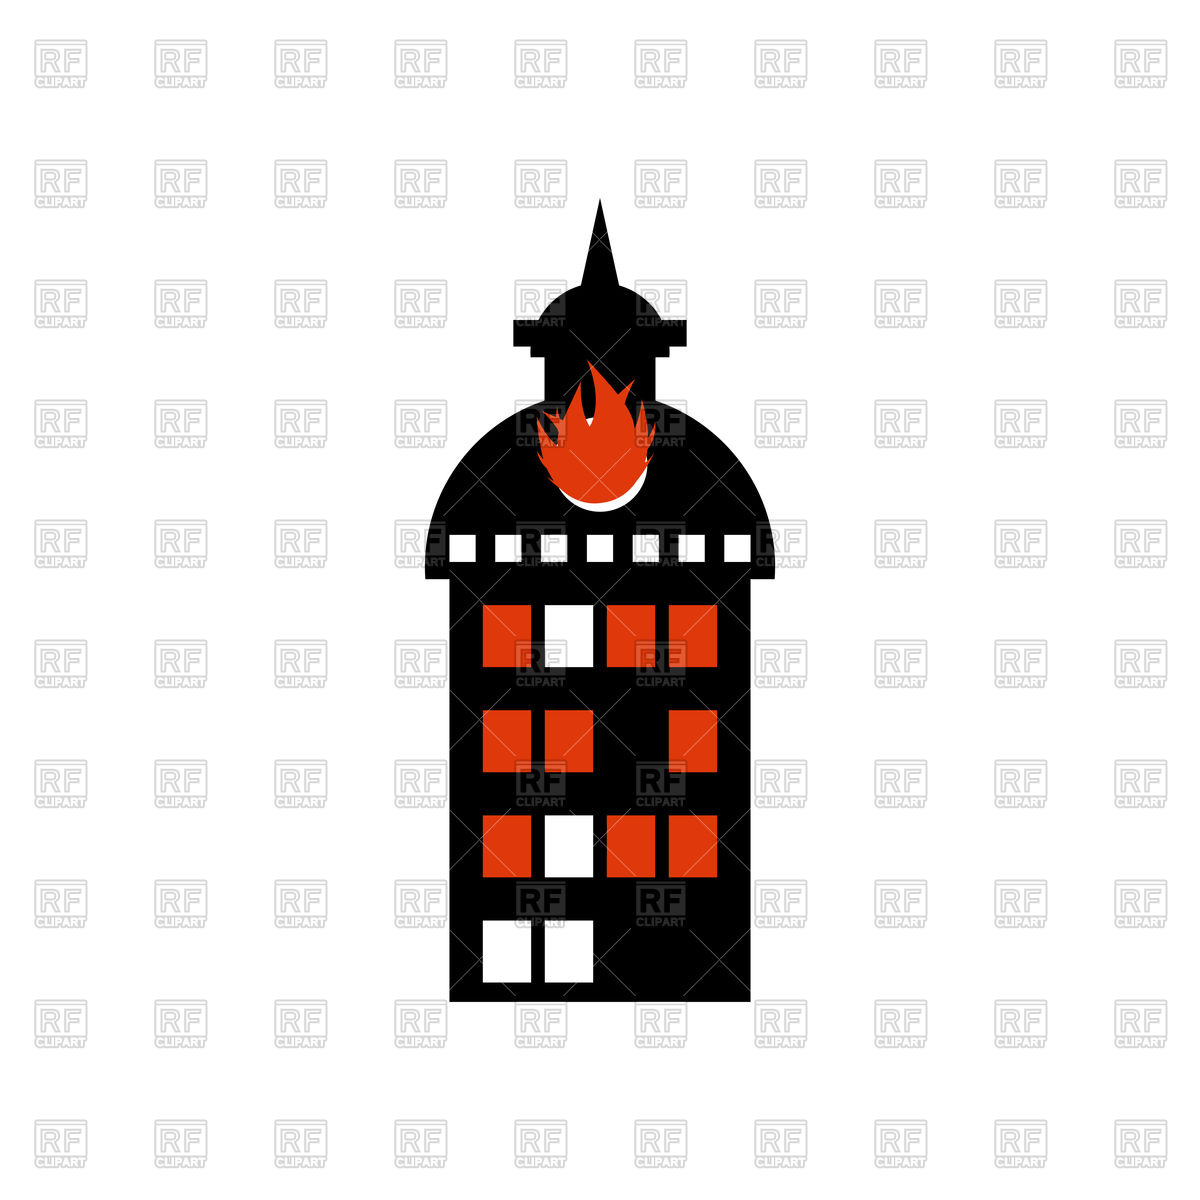 Burning building. Fire in facility. Arson. Stock Vector Image.